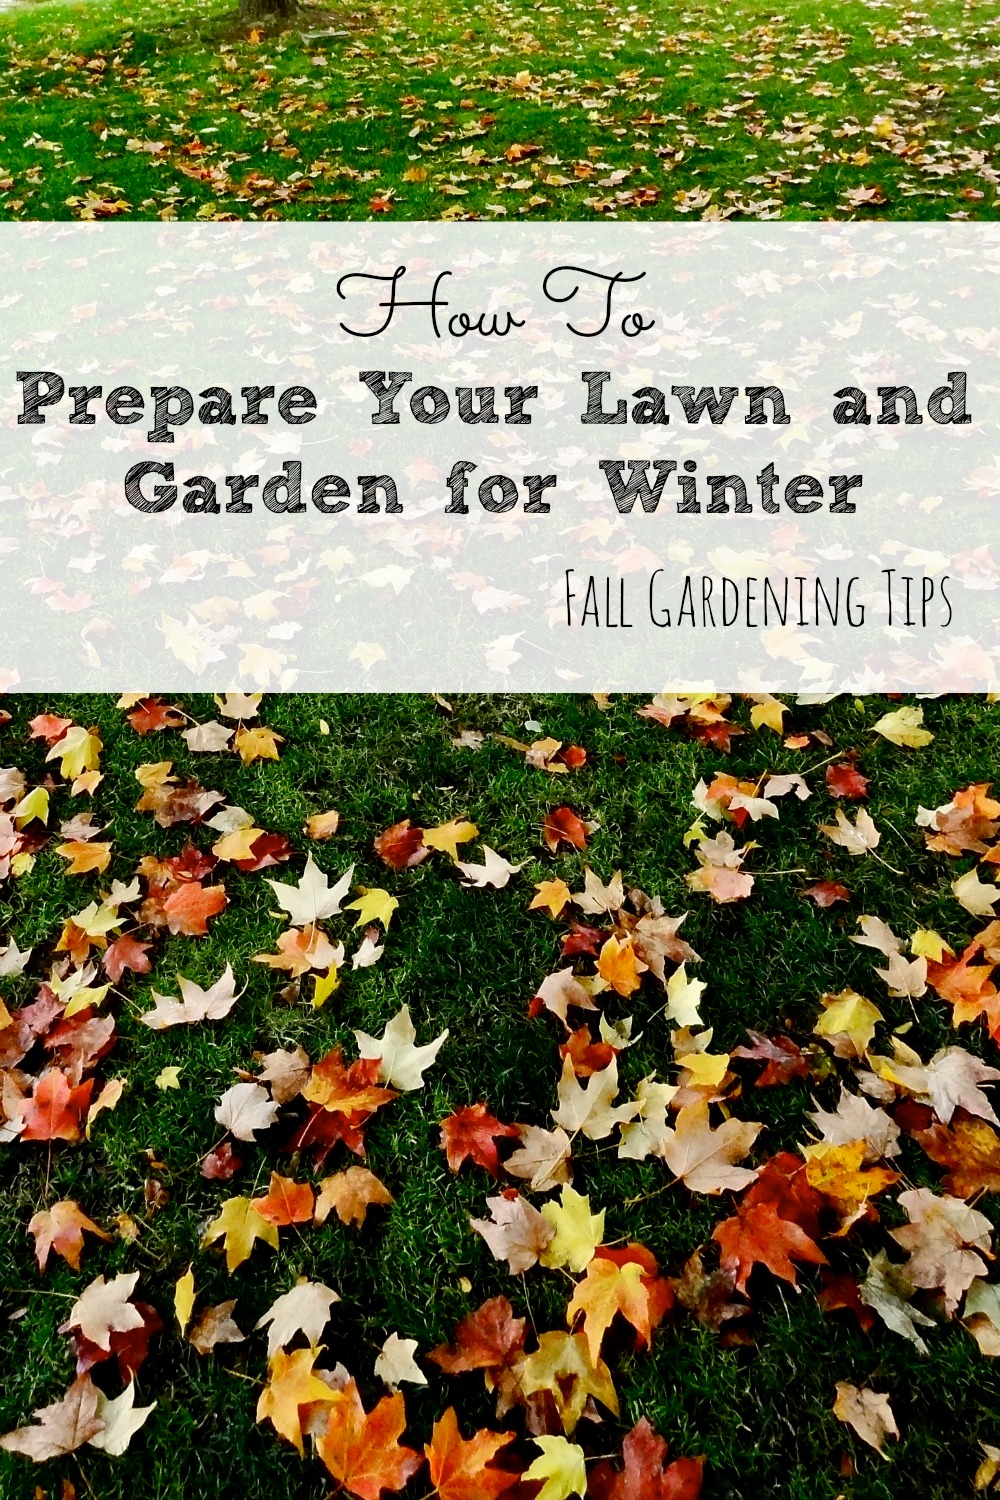 Garden Design Garden Design with Simple Fall Gardening Tips to